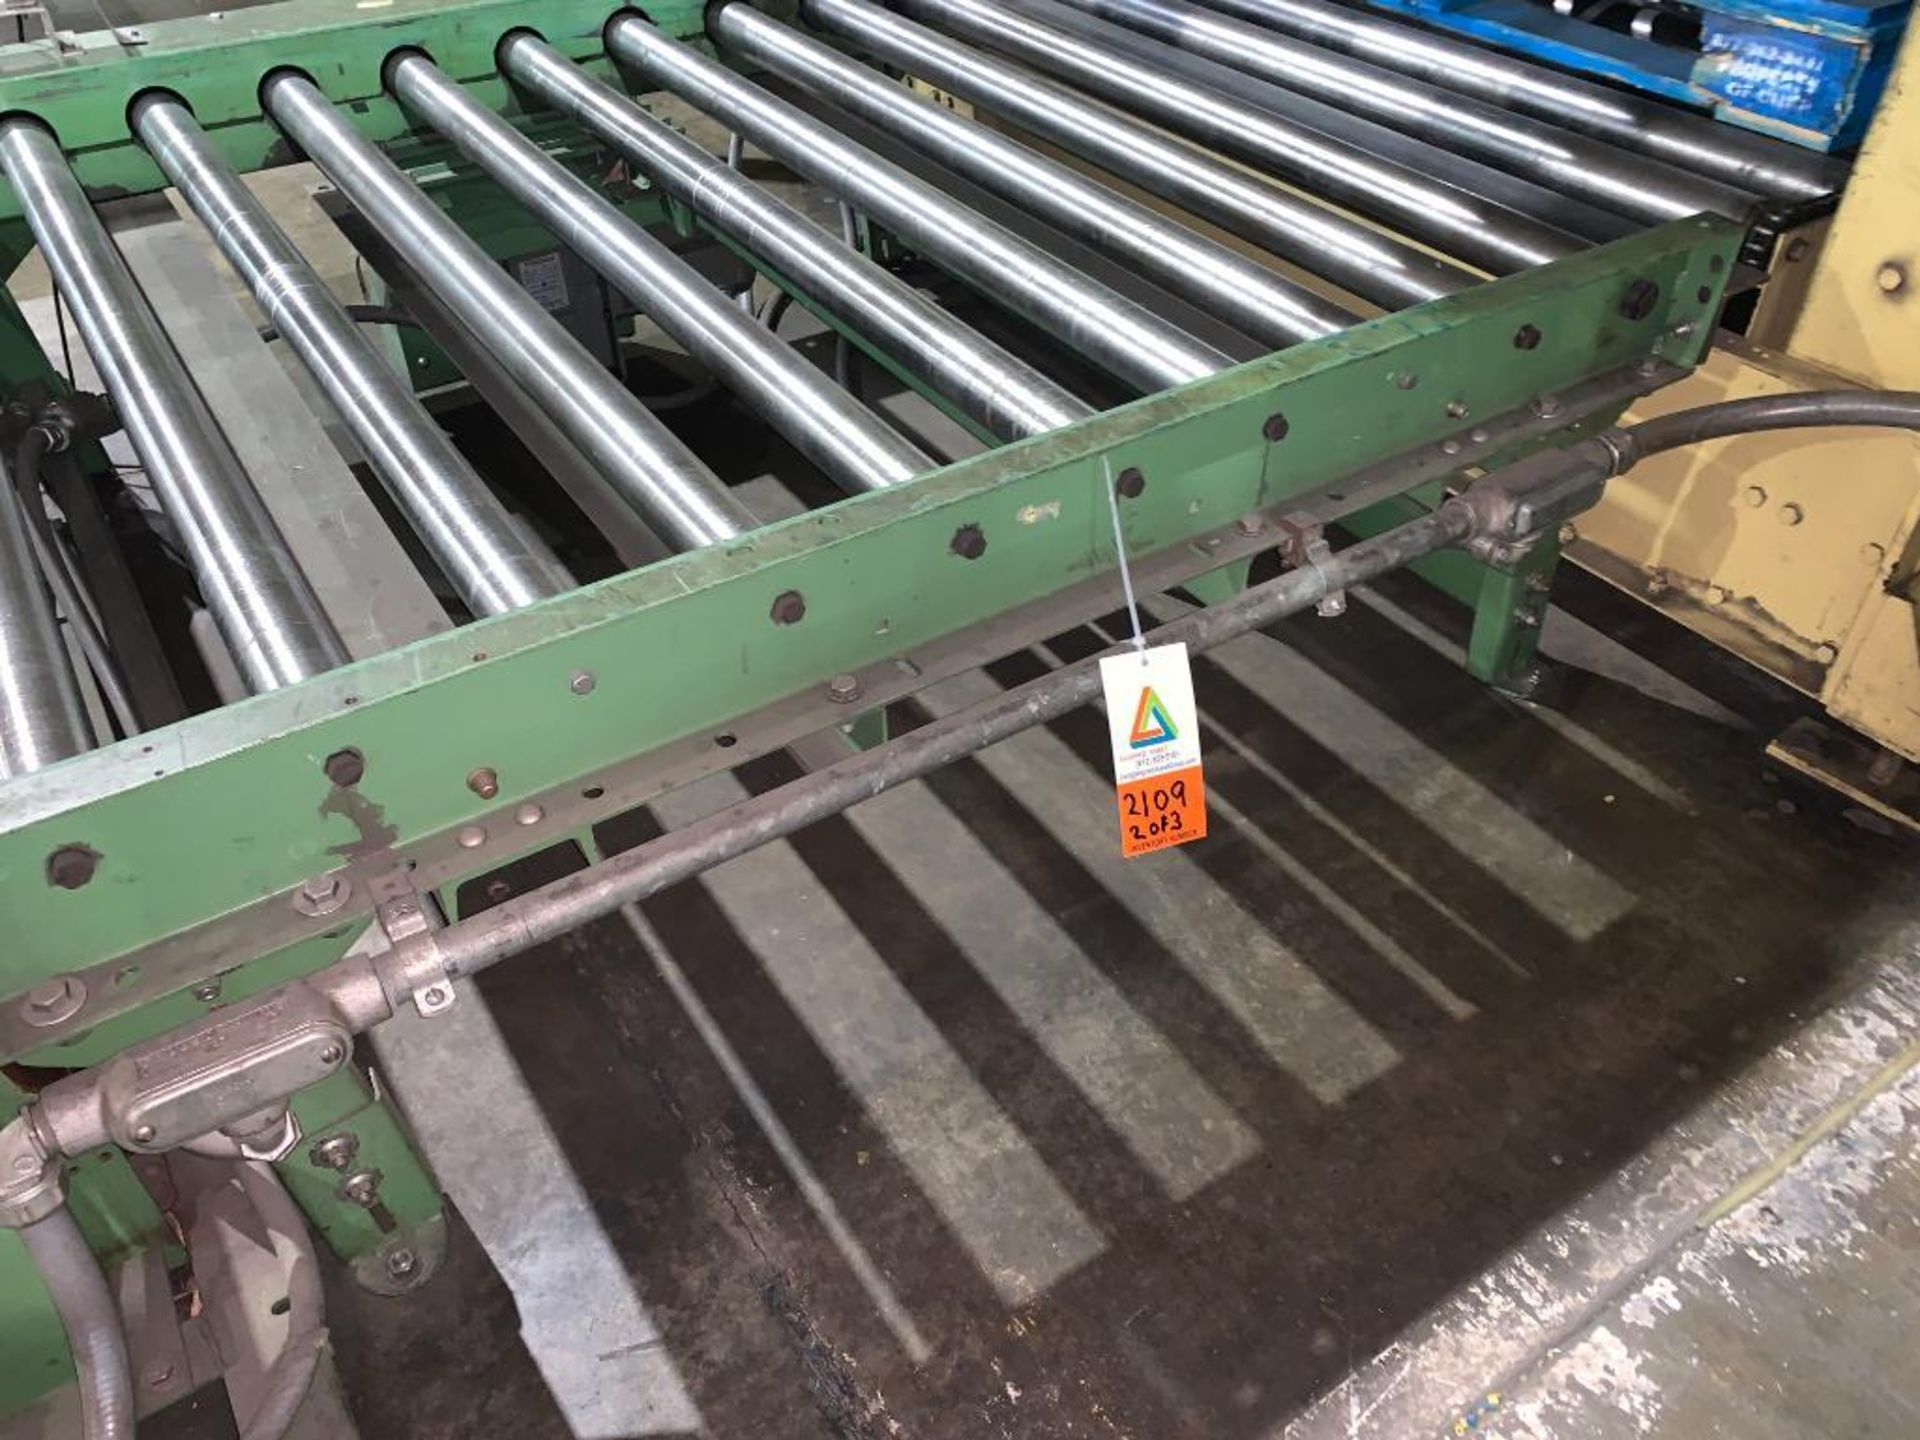 1992 Currie top to bottom palletizer, machine number LSP-5-1176 - Image 22 of 56